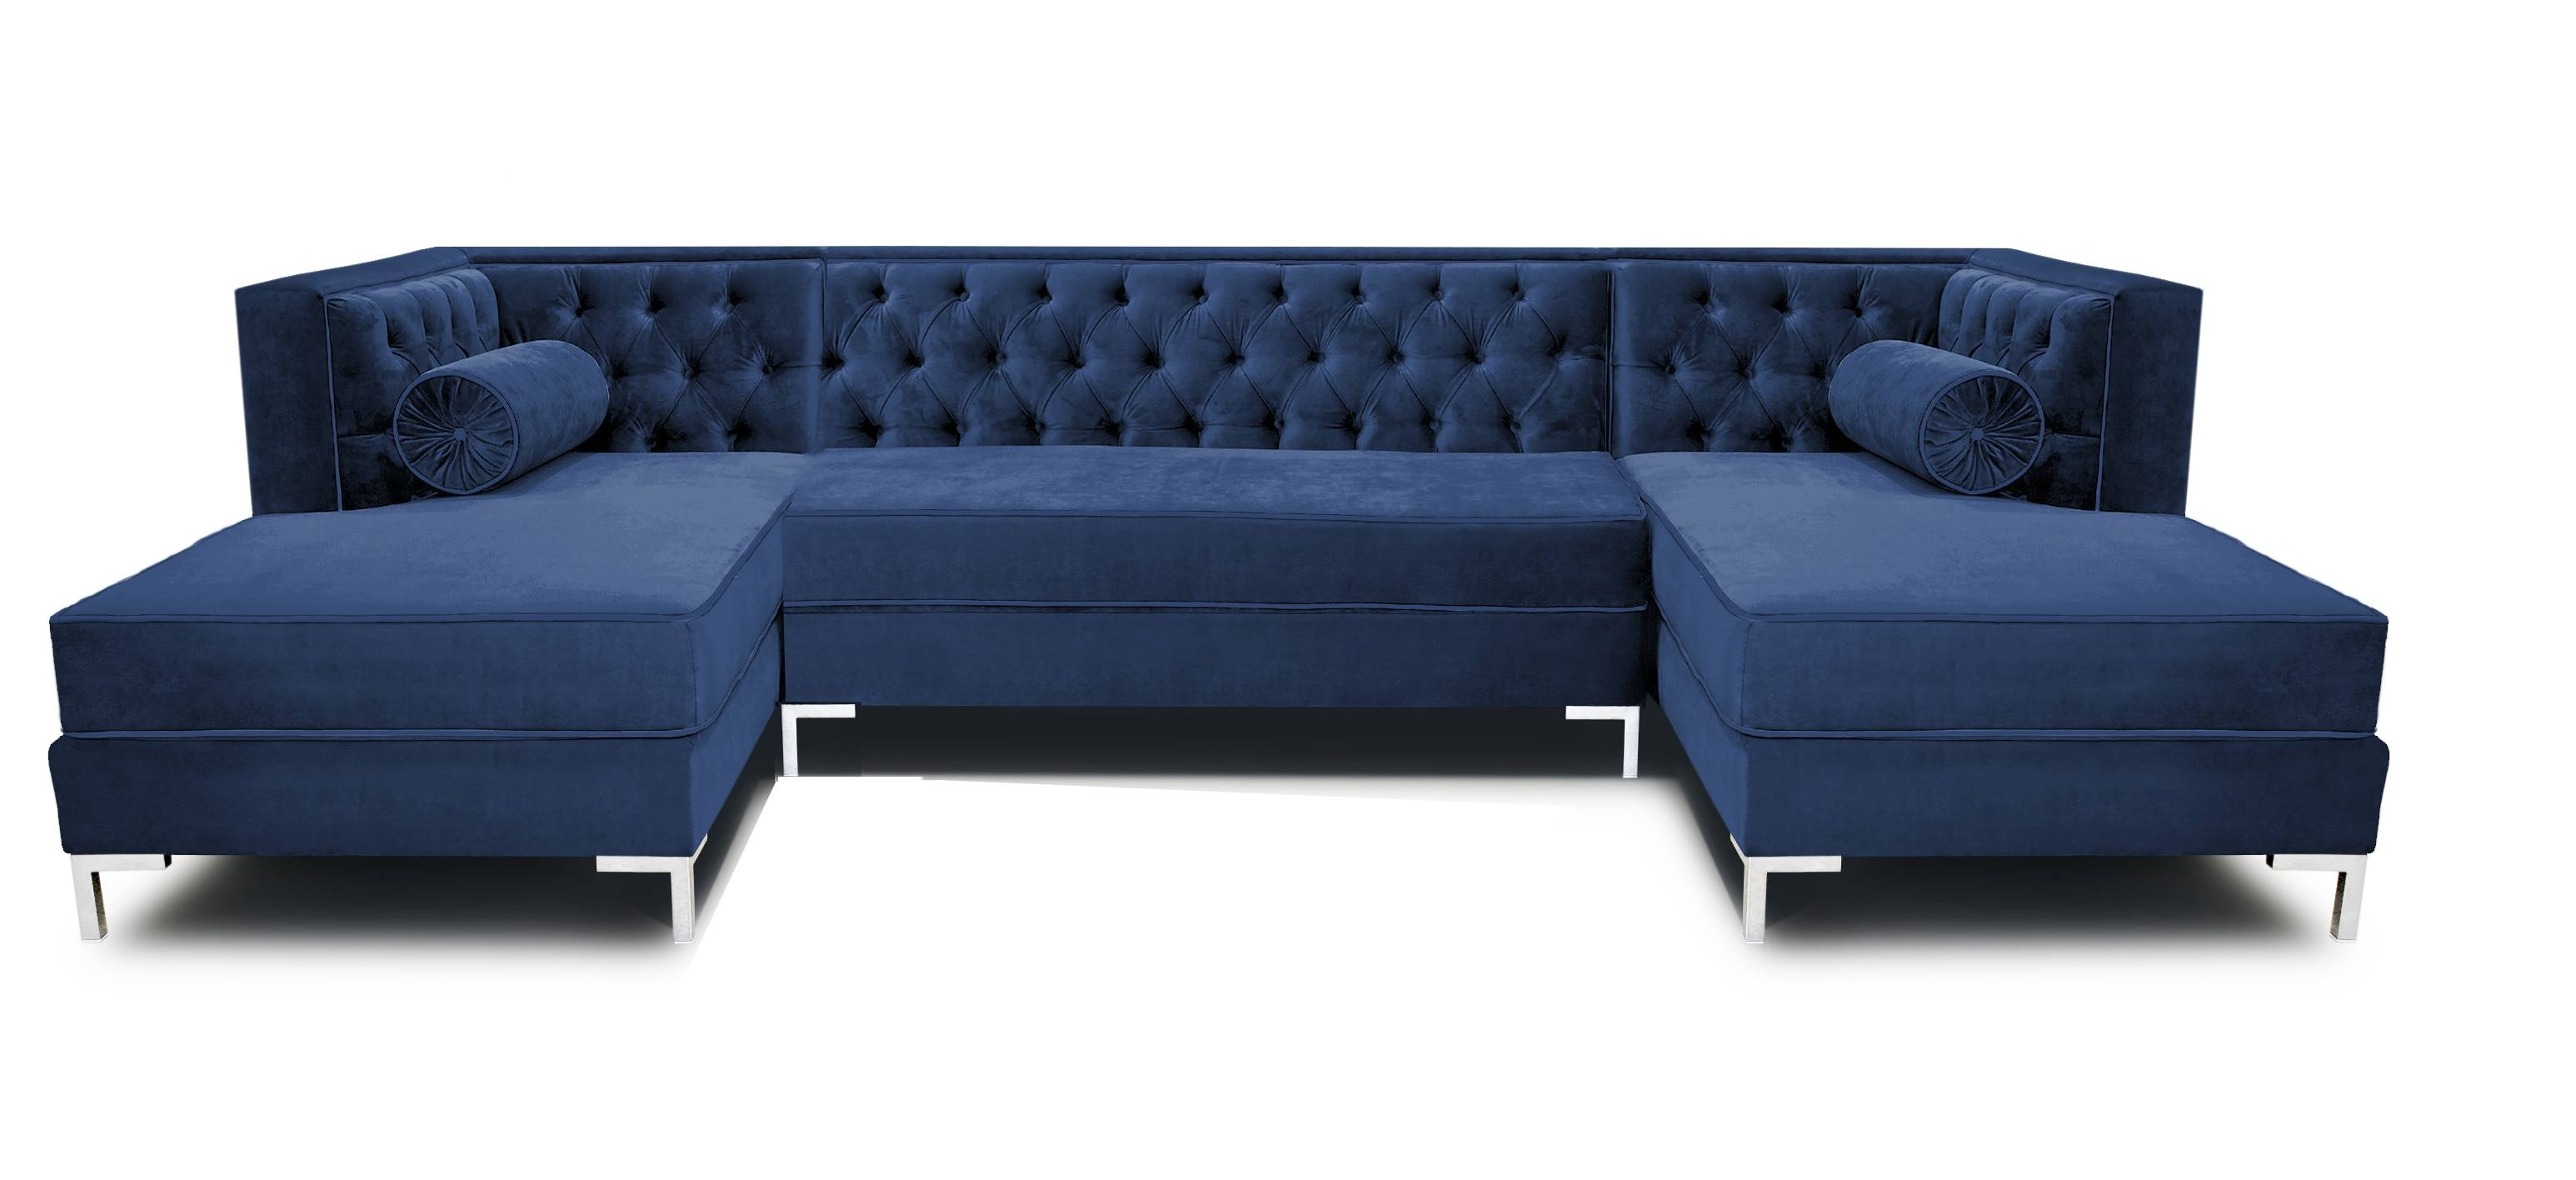 Elegant 10 Foot Sectional Sofa 42 On Leggett And Platt Sleeper In 10 Foot Sectional Sofa (Photo 5 of 30)